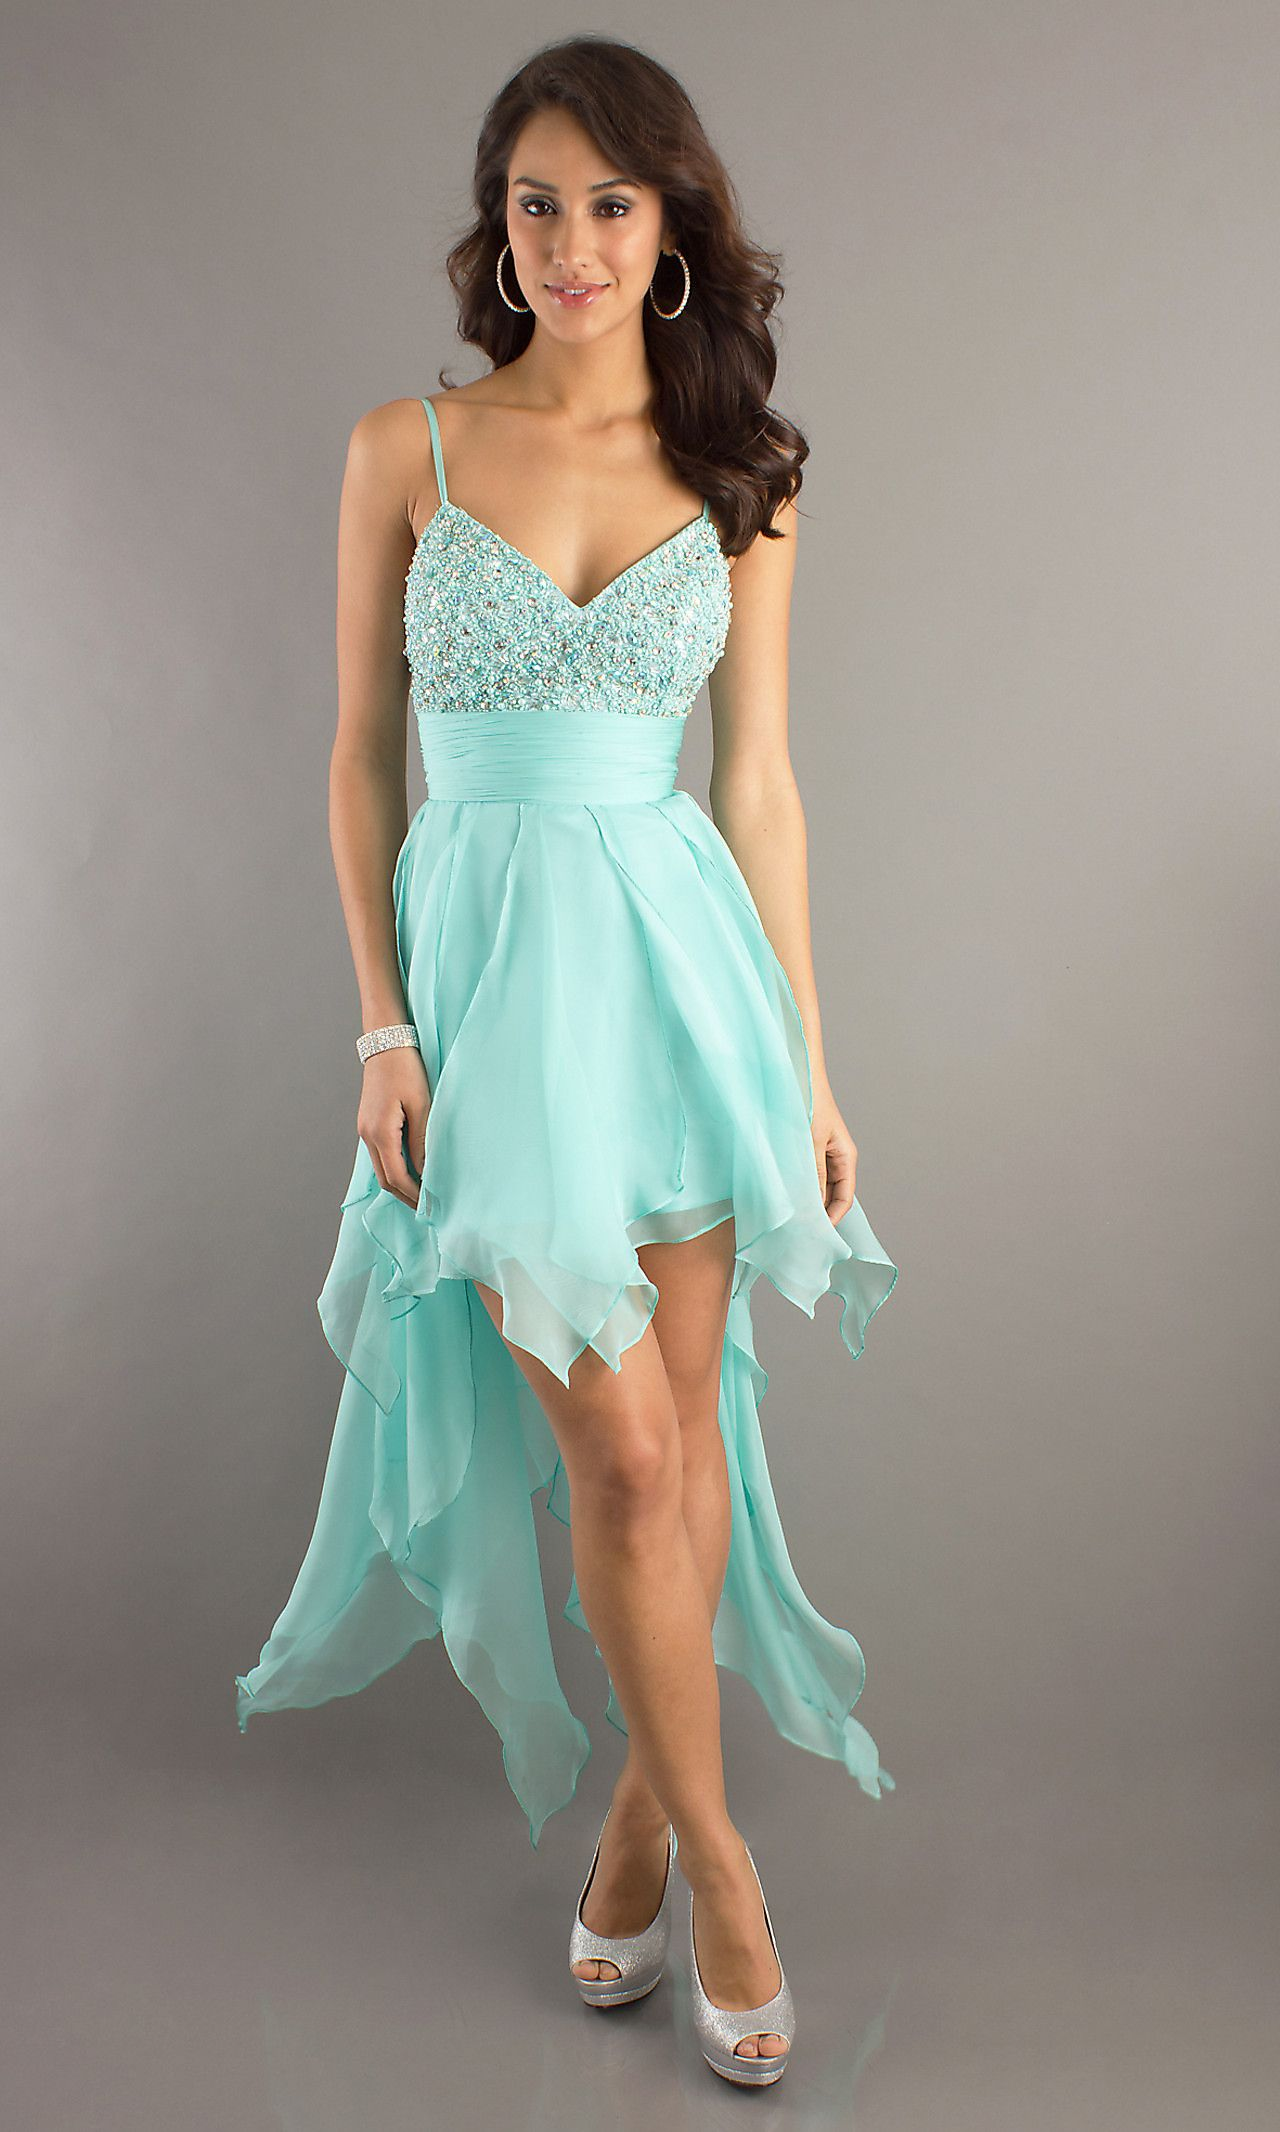 Pin by ashlee king on fashion pinterest prom gowns and dream